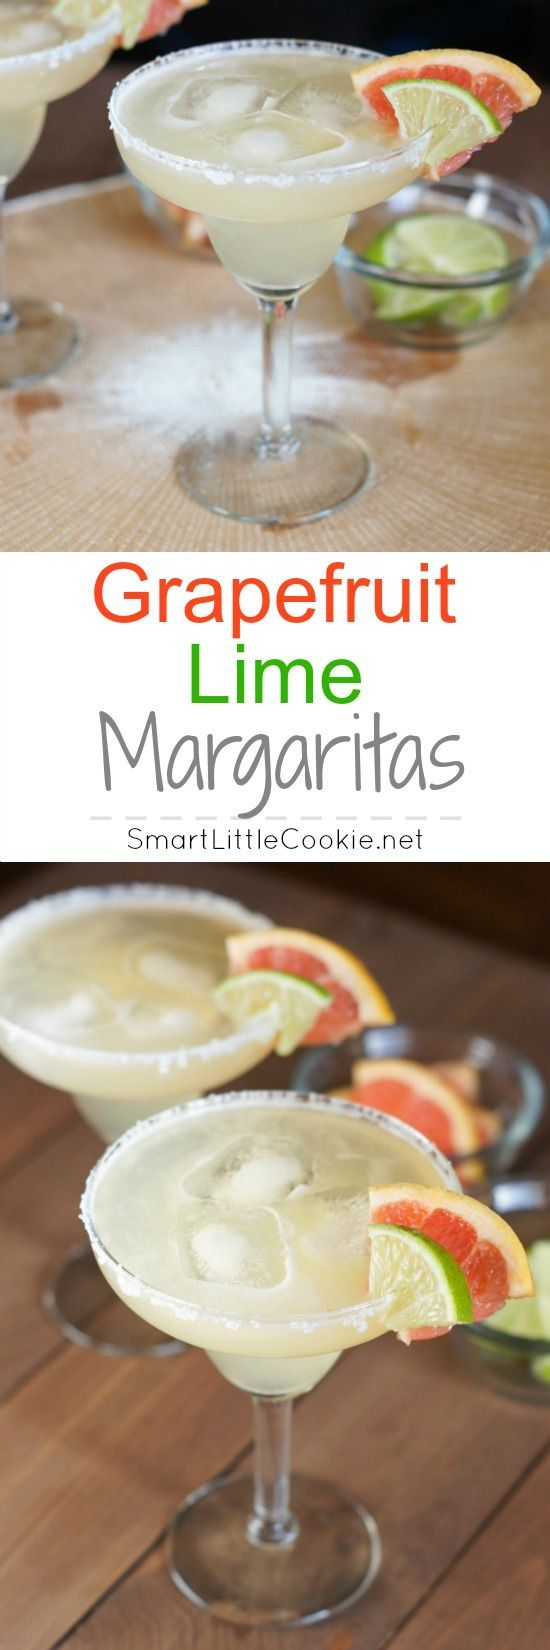 Grapefruit Lime Margaritas | http://SmartLittleCookie.net